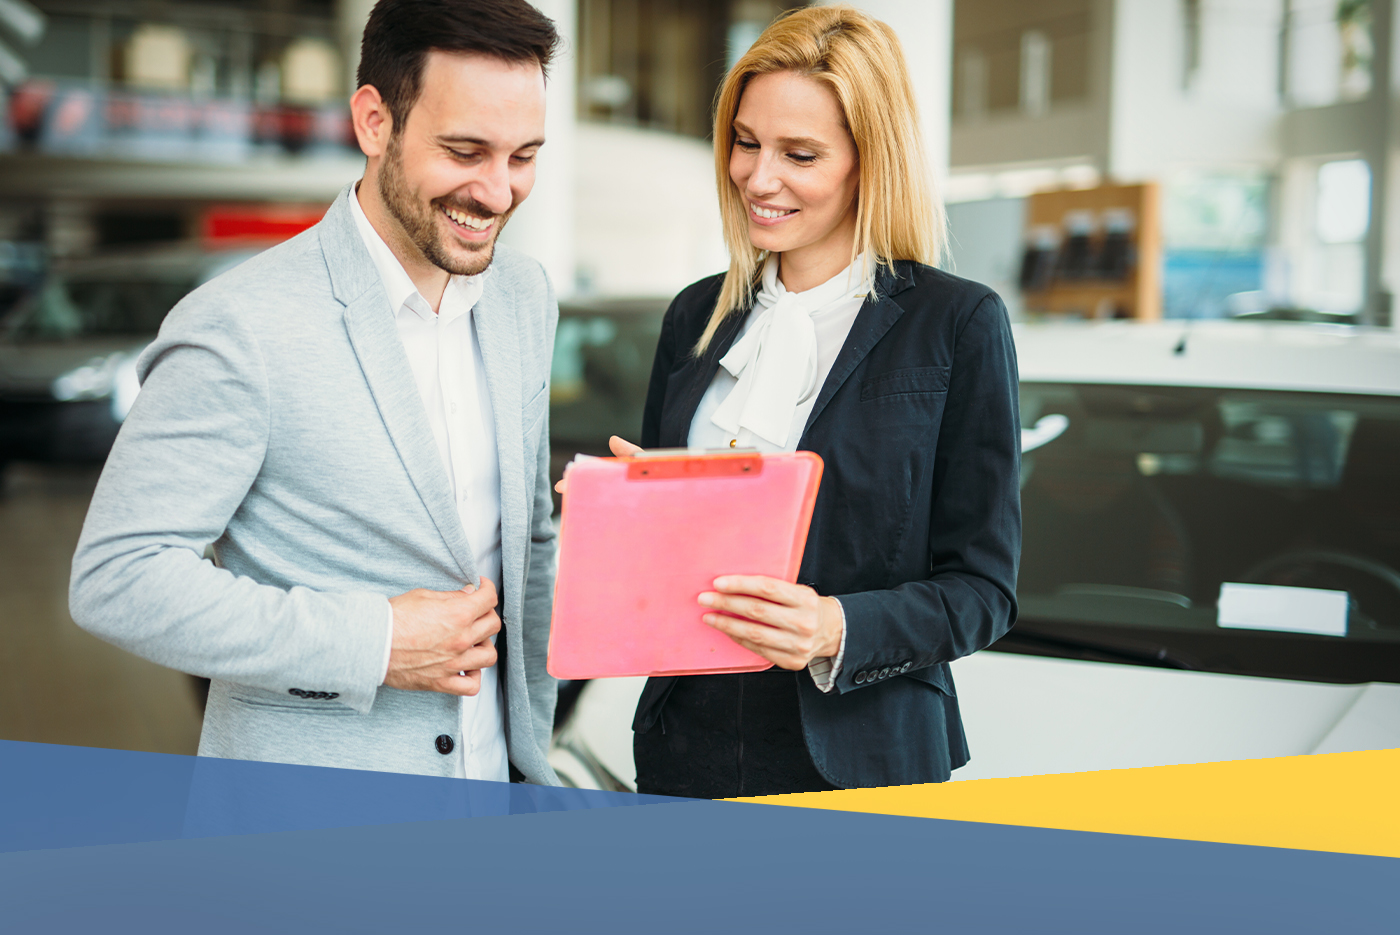 Person purchasing their car at an auto dealer